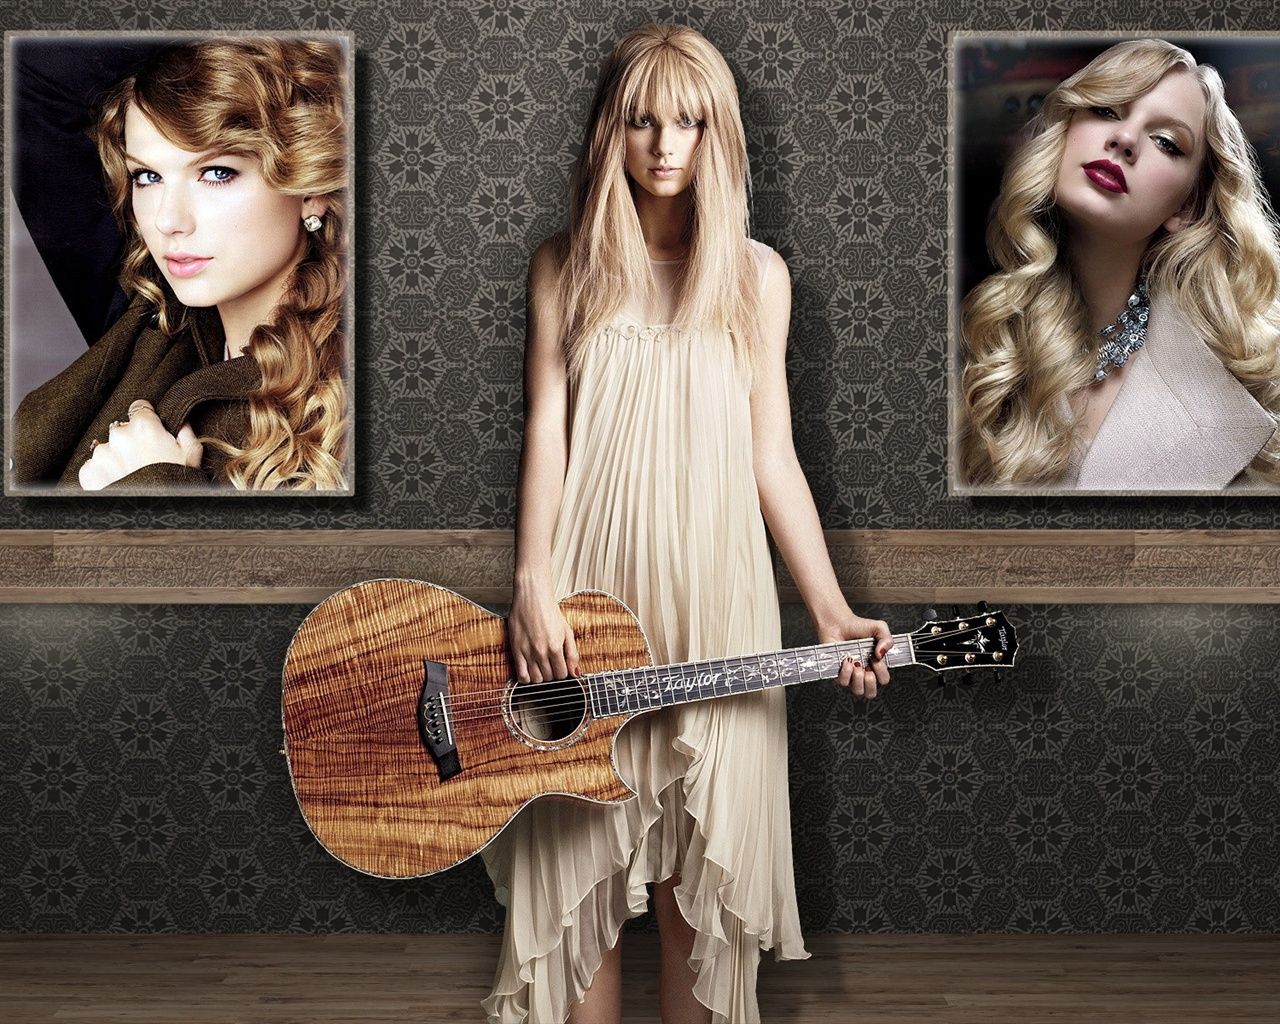 Taylor Swift 06 wallpaper - 1280x1024